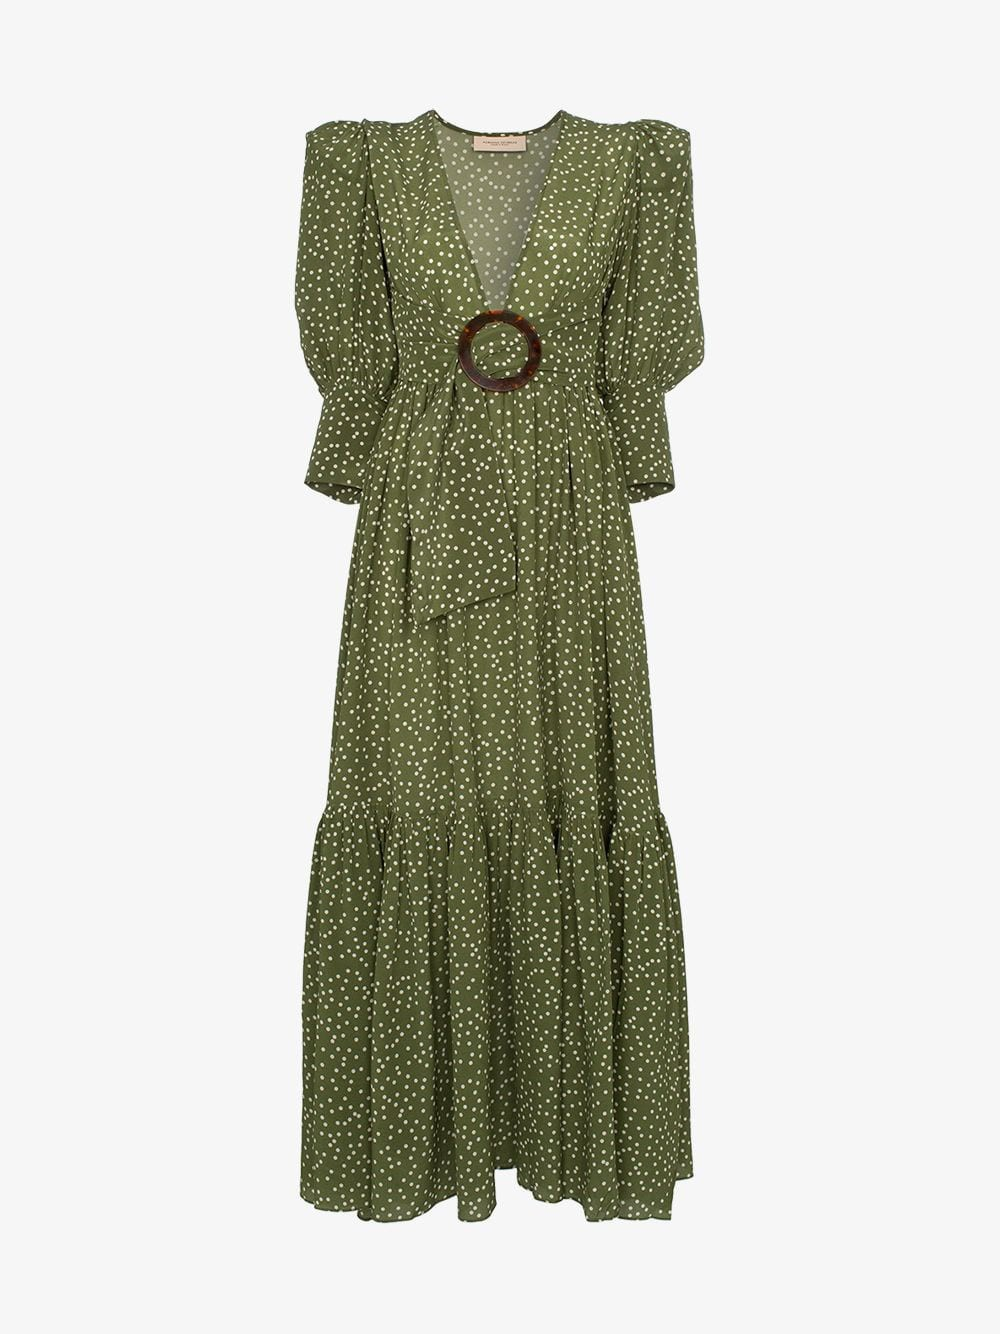 Adriana Degreas Mille Punti deep V-neck silk dress in green